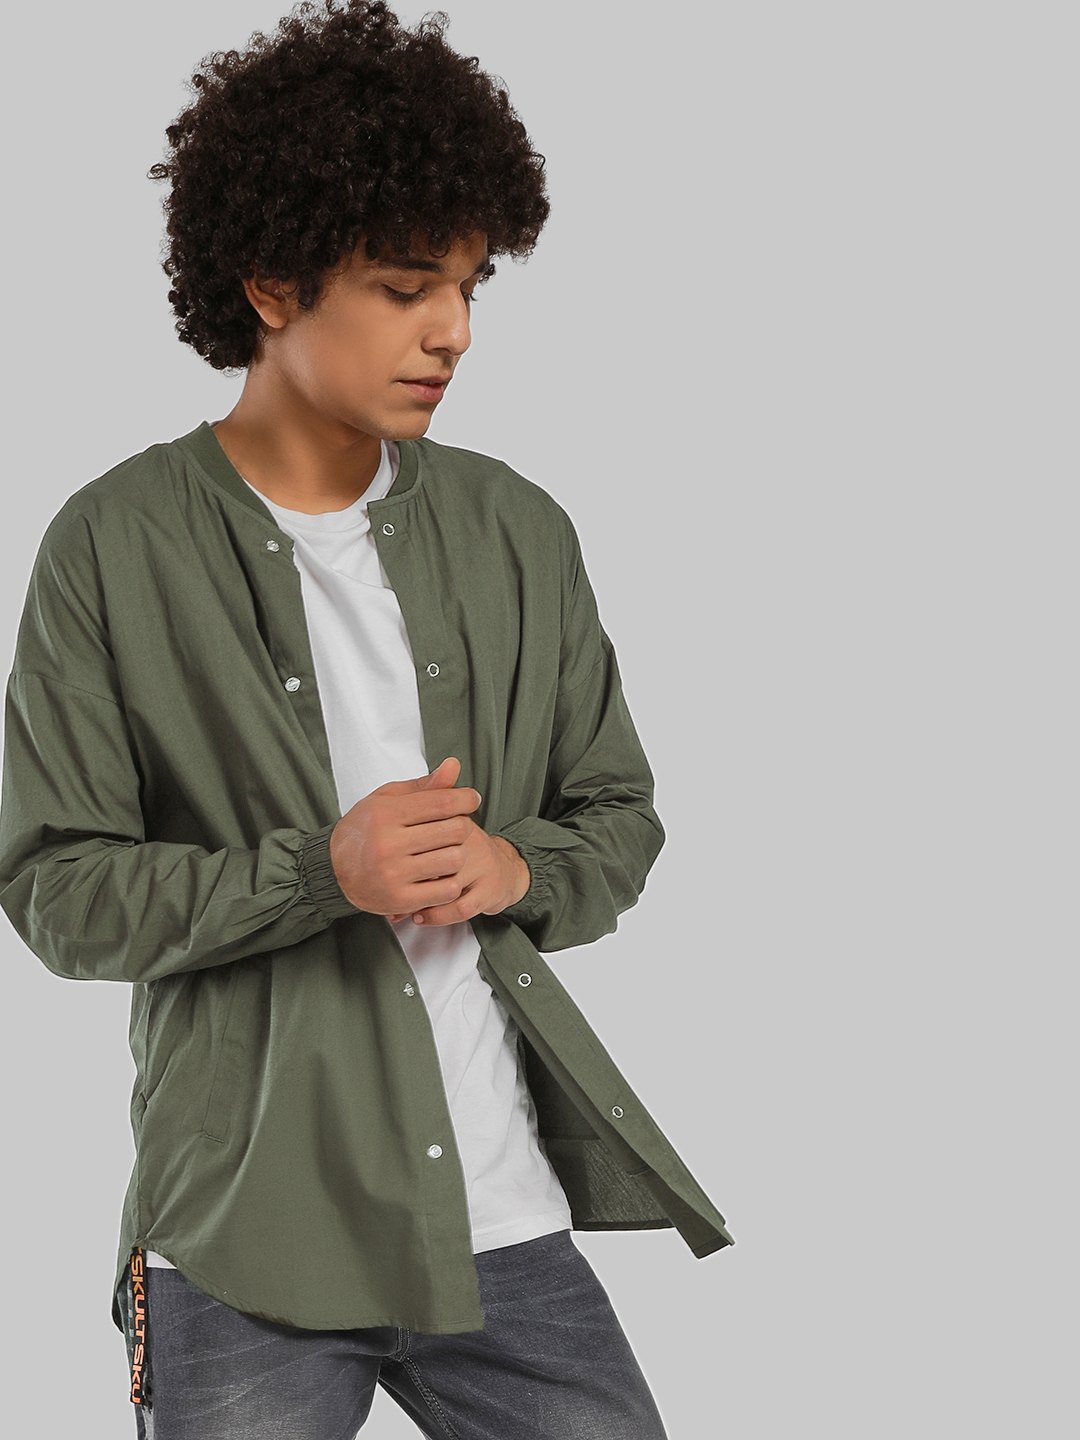 SKULT By Shahid Kapoor Olive Drop Shoulder Baseball Collar Shirt 1